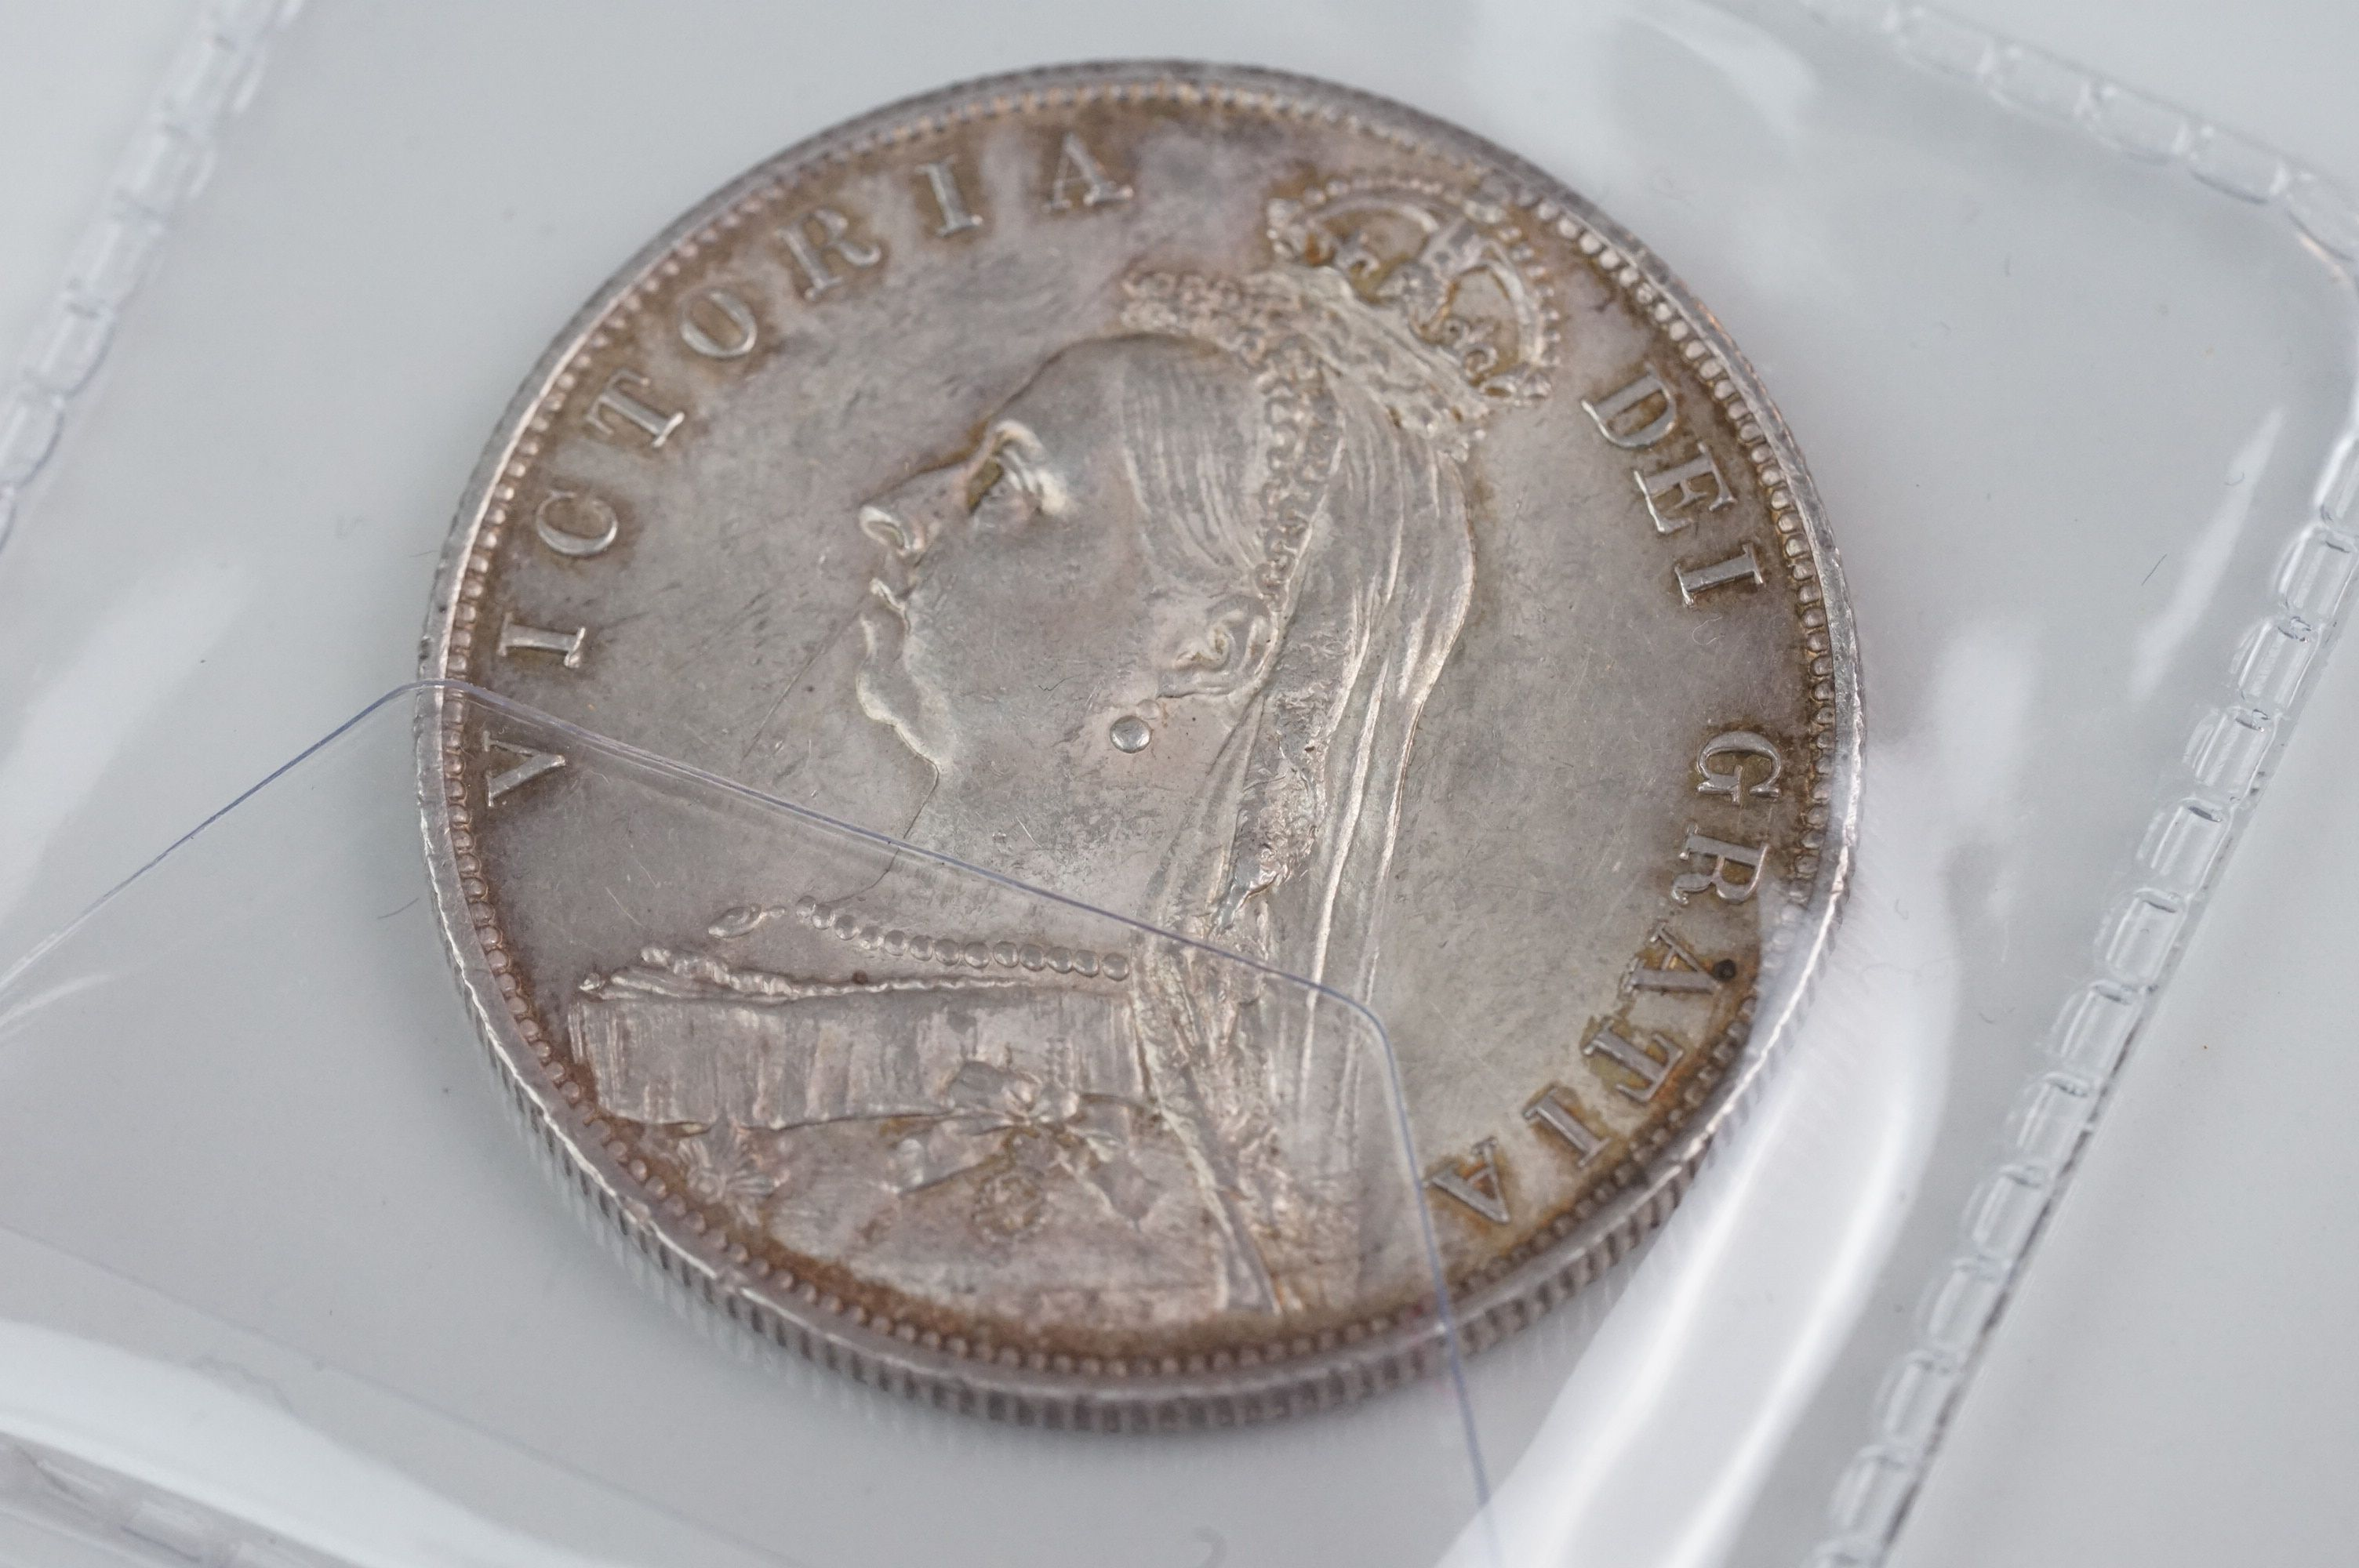 A collection of five Victorian silver coins to include two double florins, two florins and a - Image 3 of 11